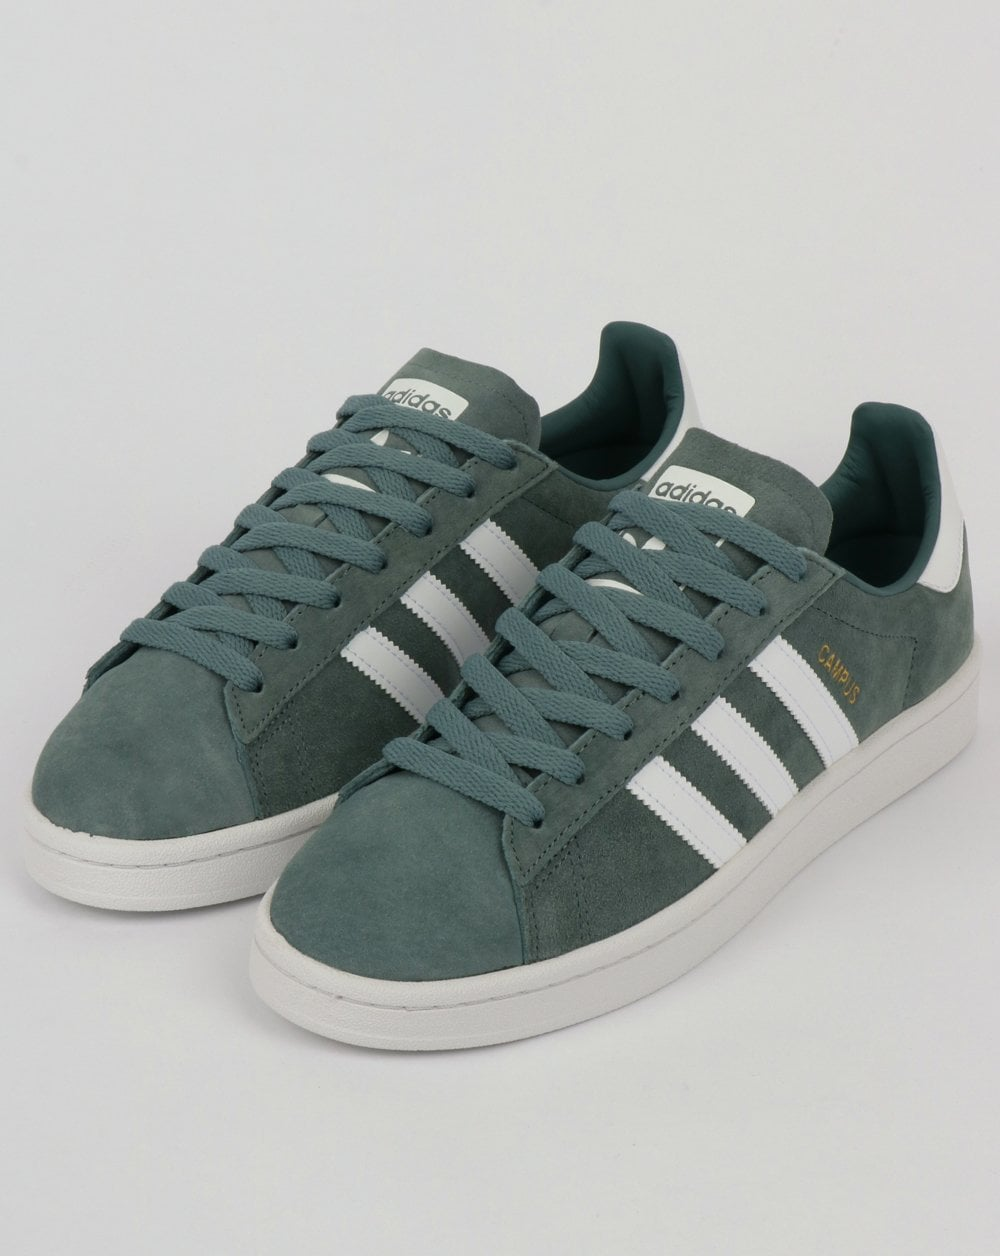 Adidas Campus Trainers Raw Green White Suede Shoes Originals